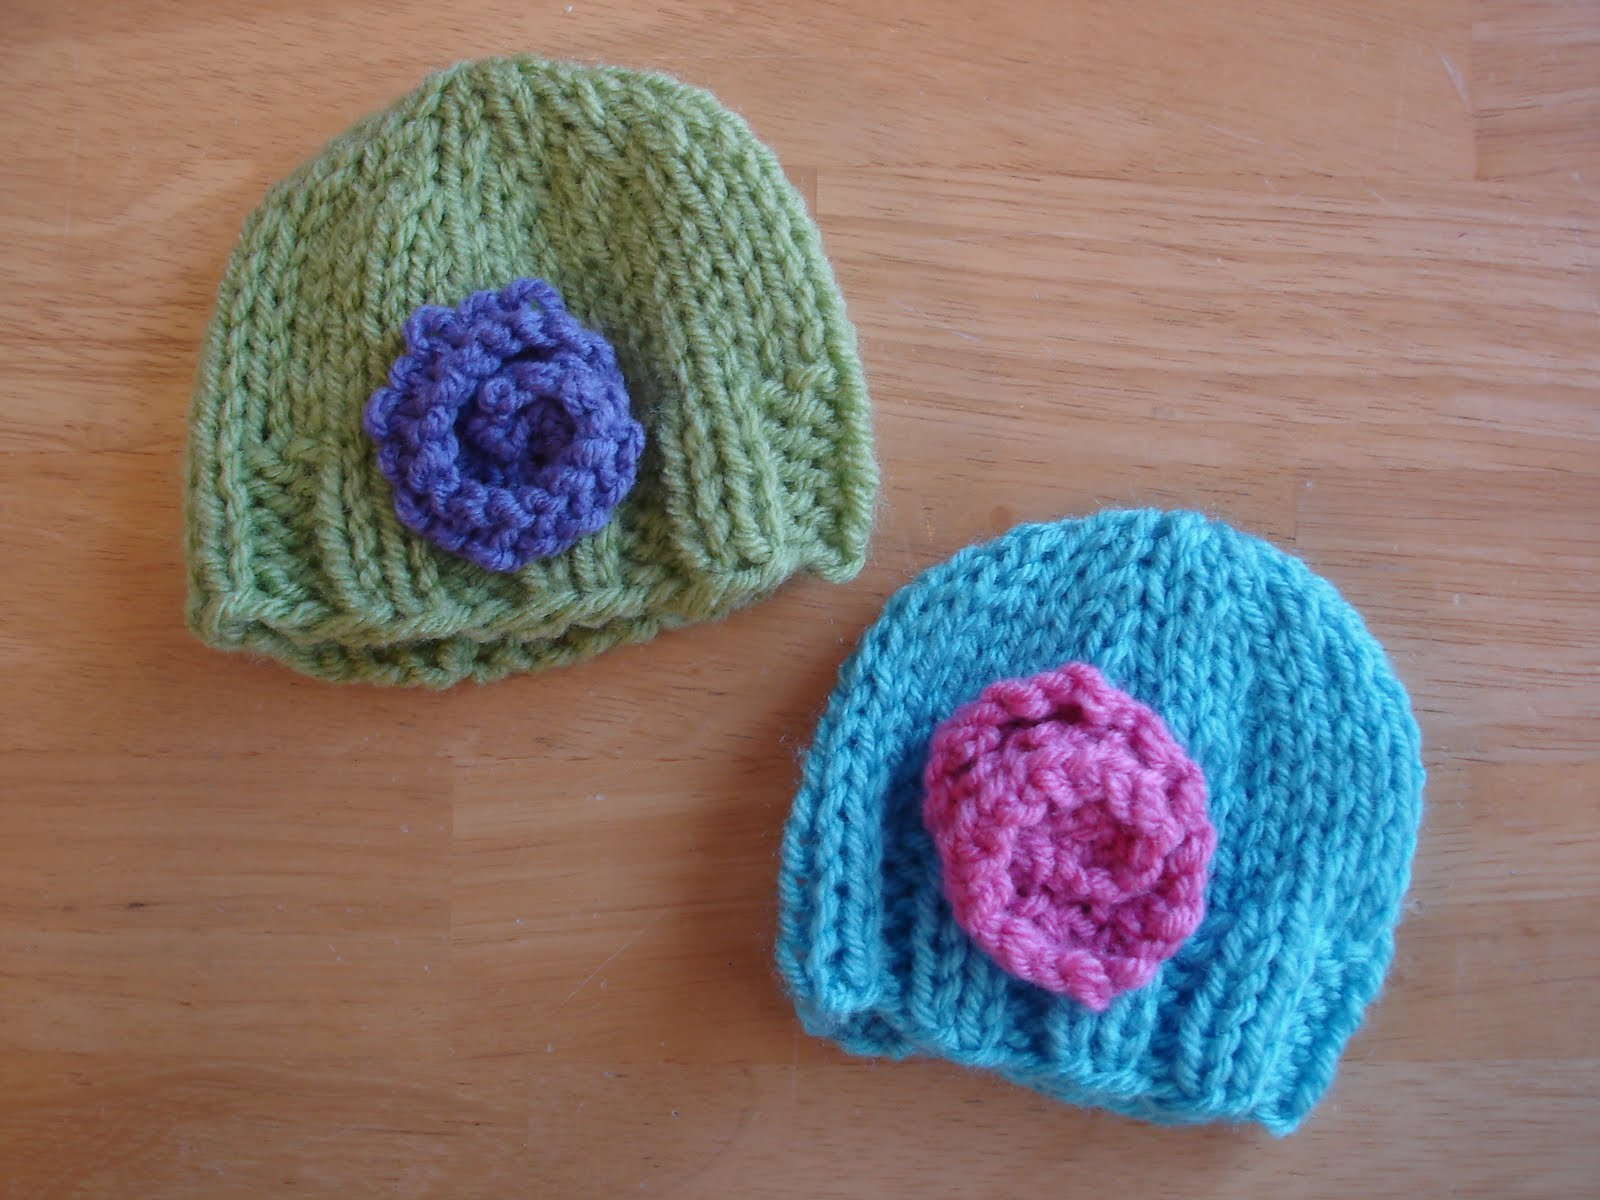 Baby Hats Free Knitting Patterns : Fiber Flux: Free Knitting Pattern...Baby Doll Hats!